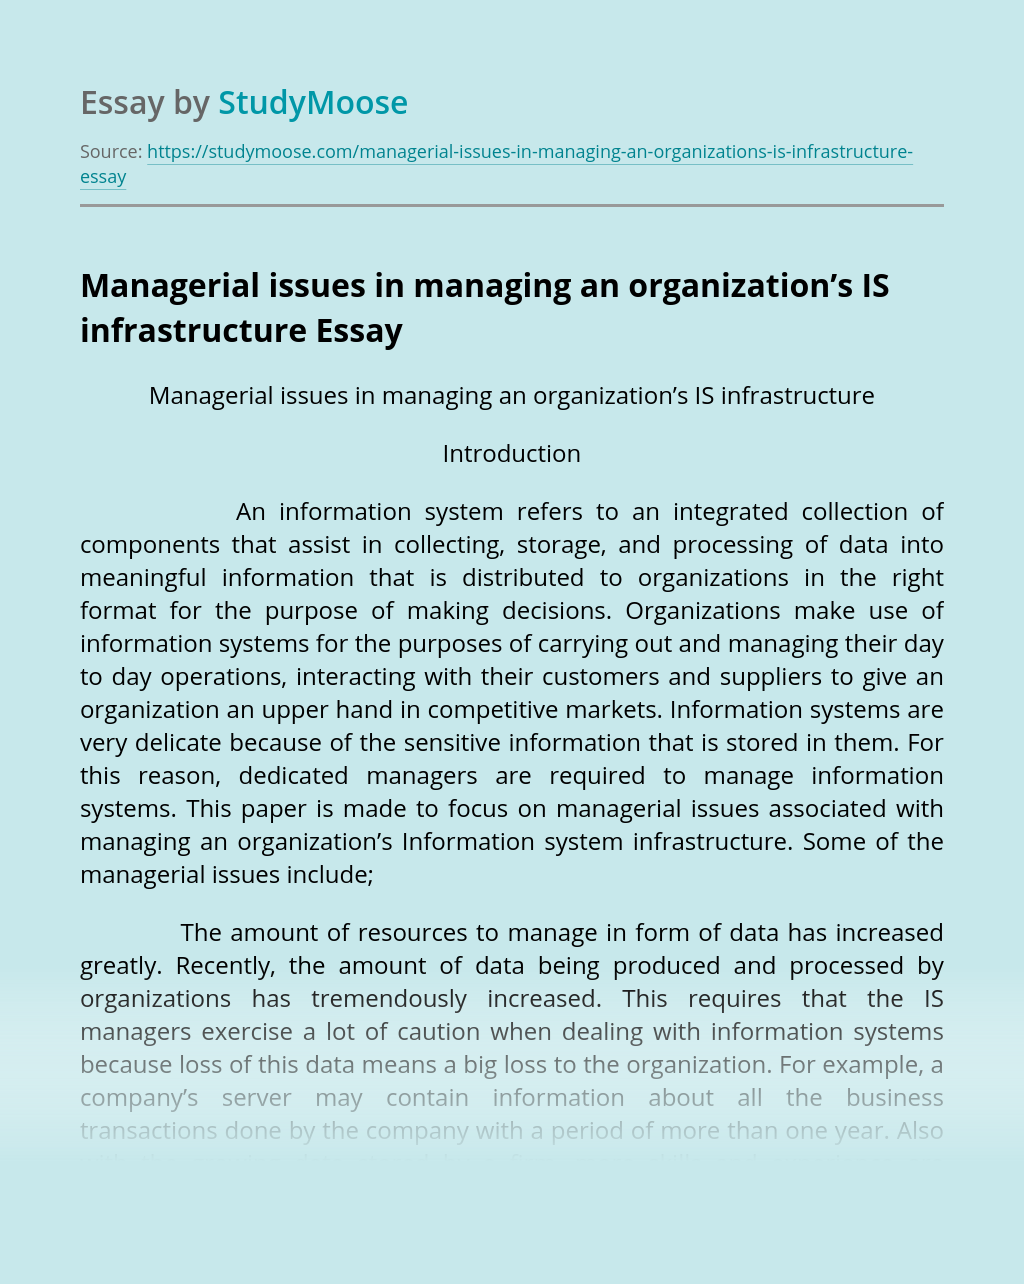 Managerial issues in managing an organization's IS infrastructure